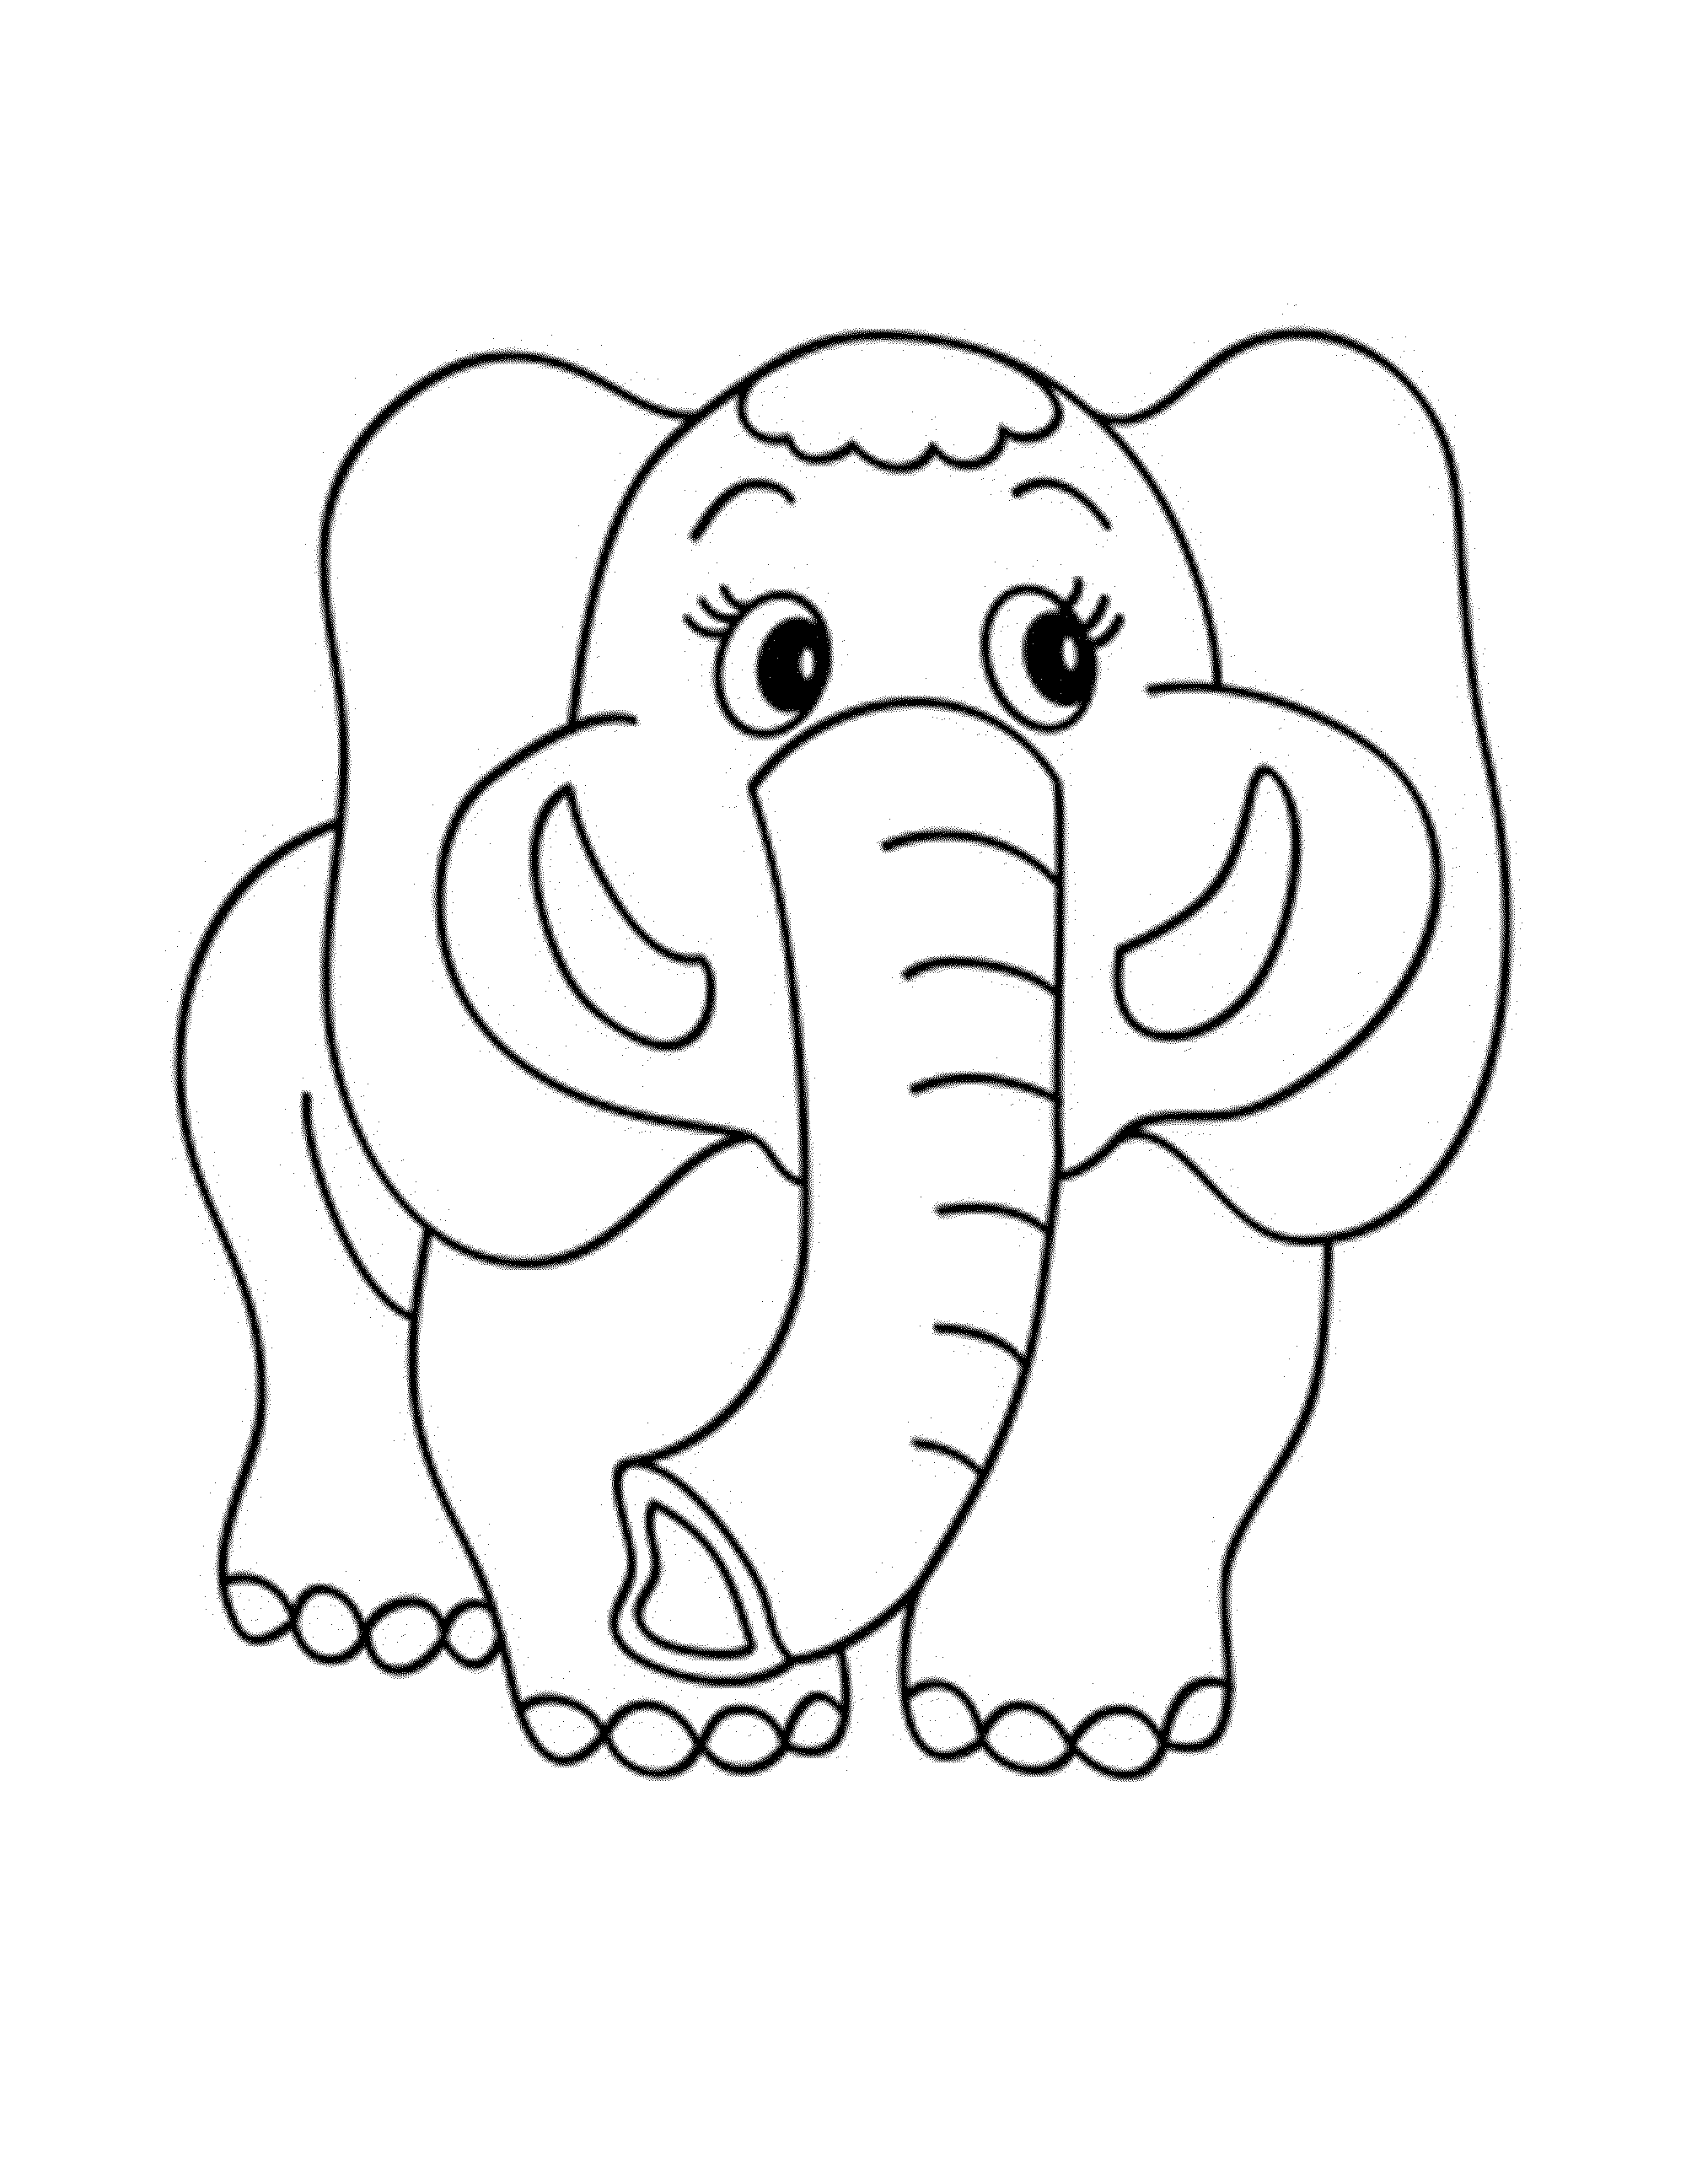 elephant coloring sheets printable print download teaching kids through elephant coloring elephant coloring sheets printable